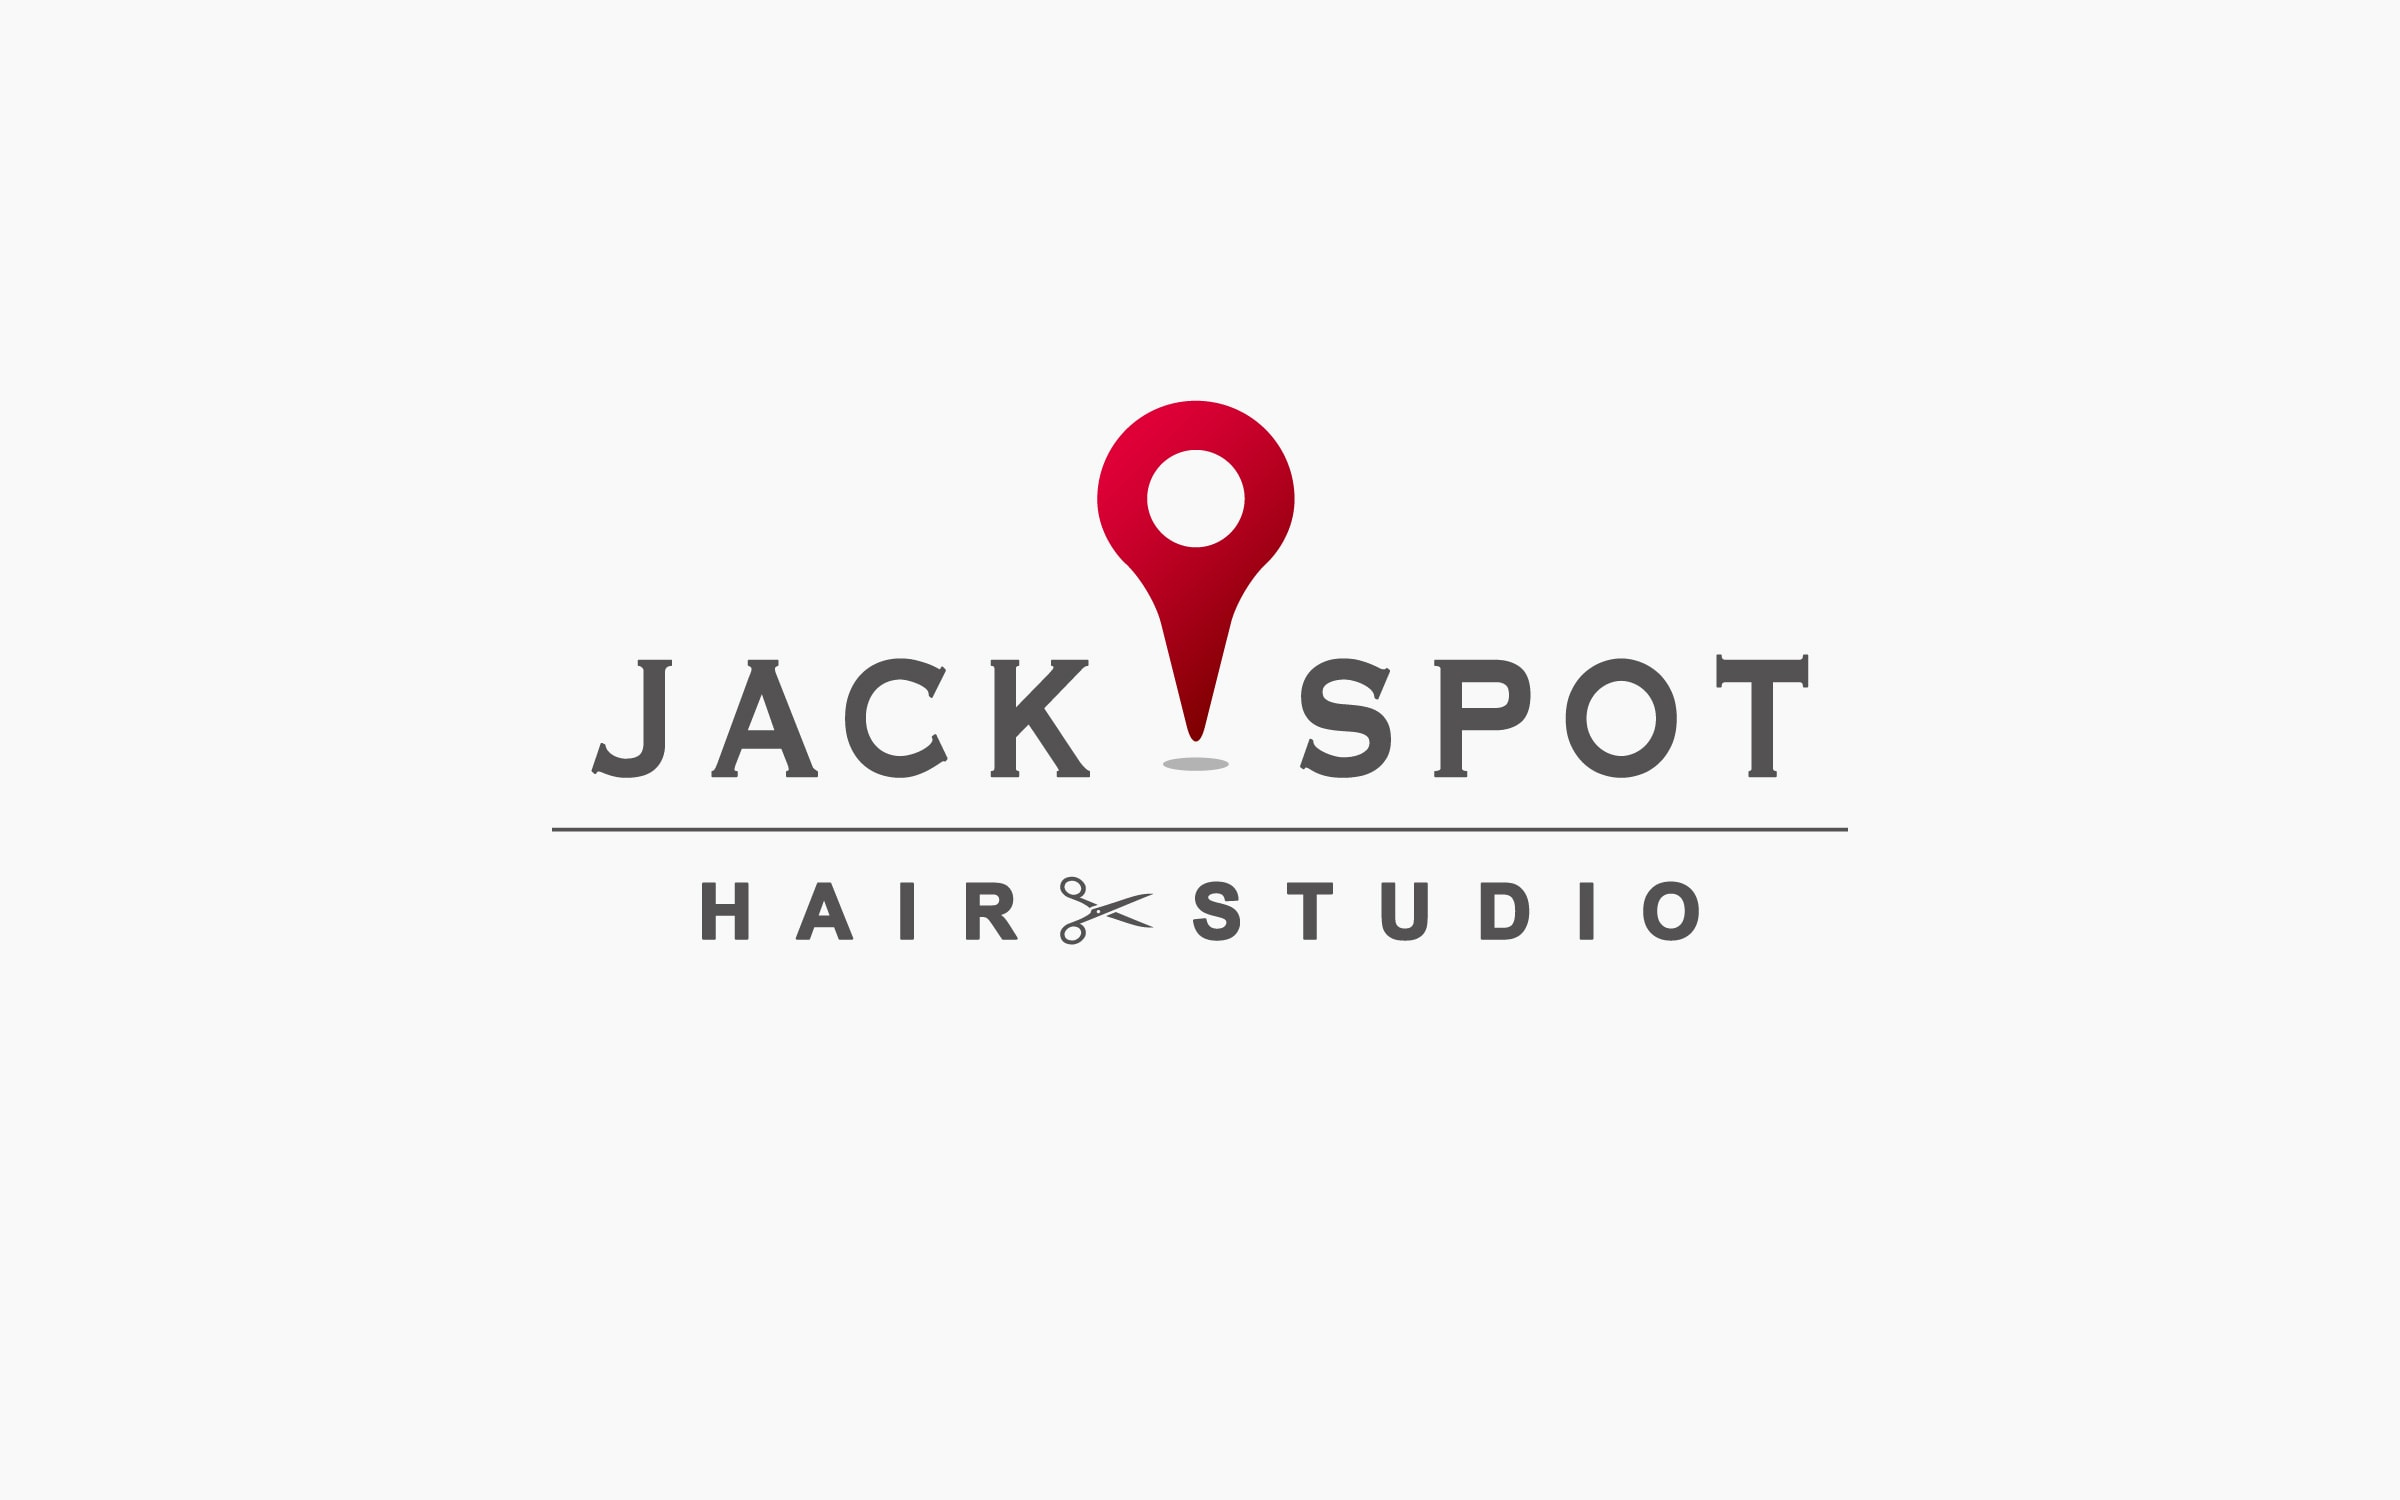 Hair studio JACKSPOT CI 1枚目